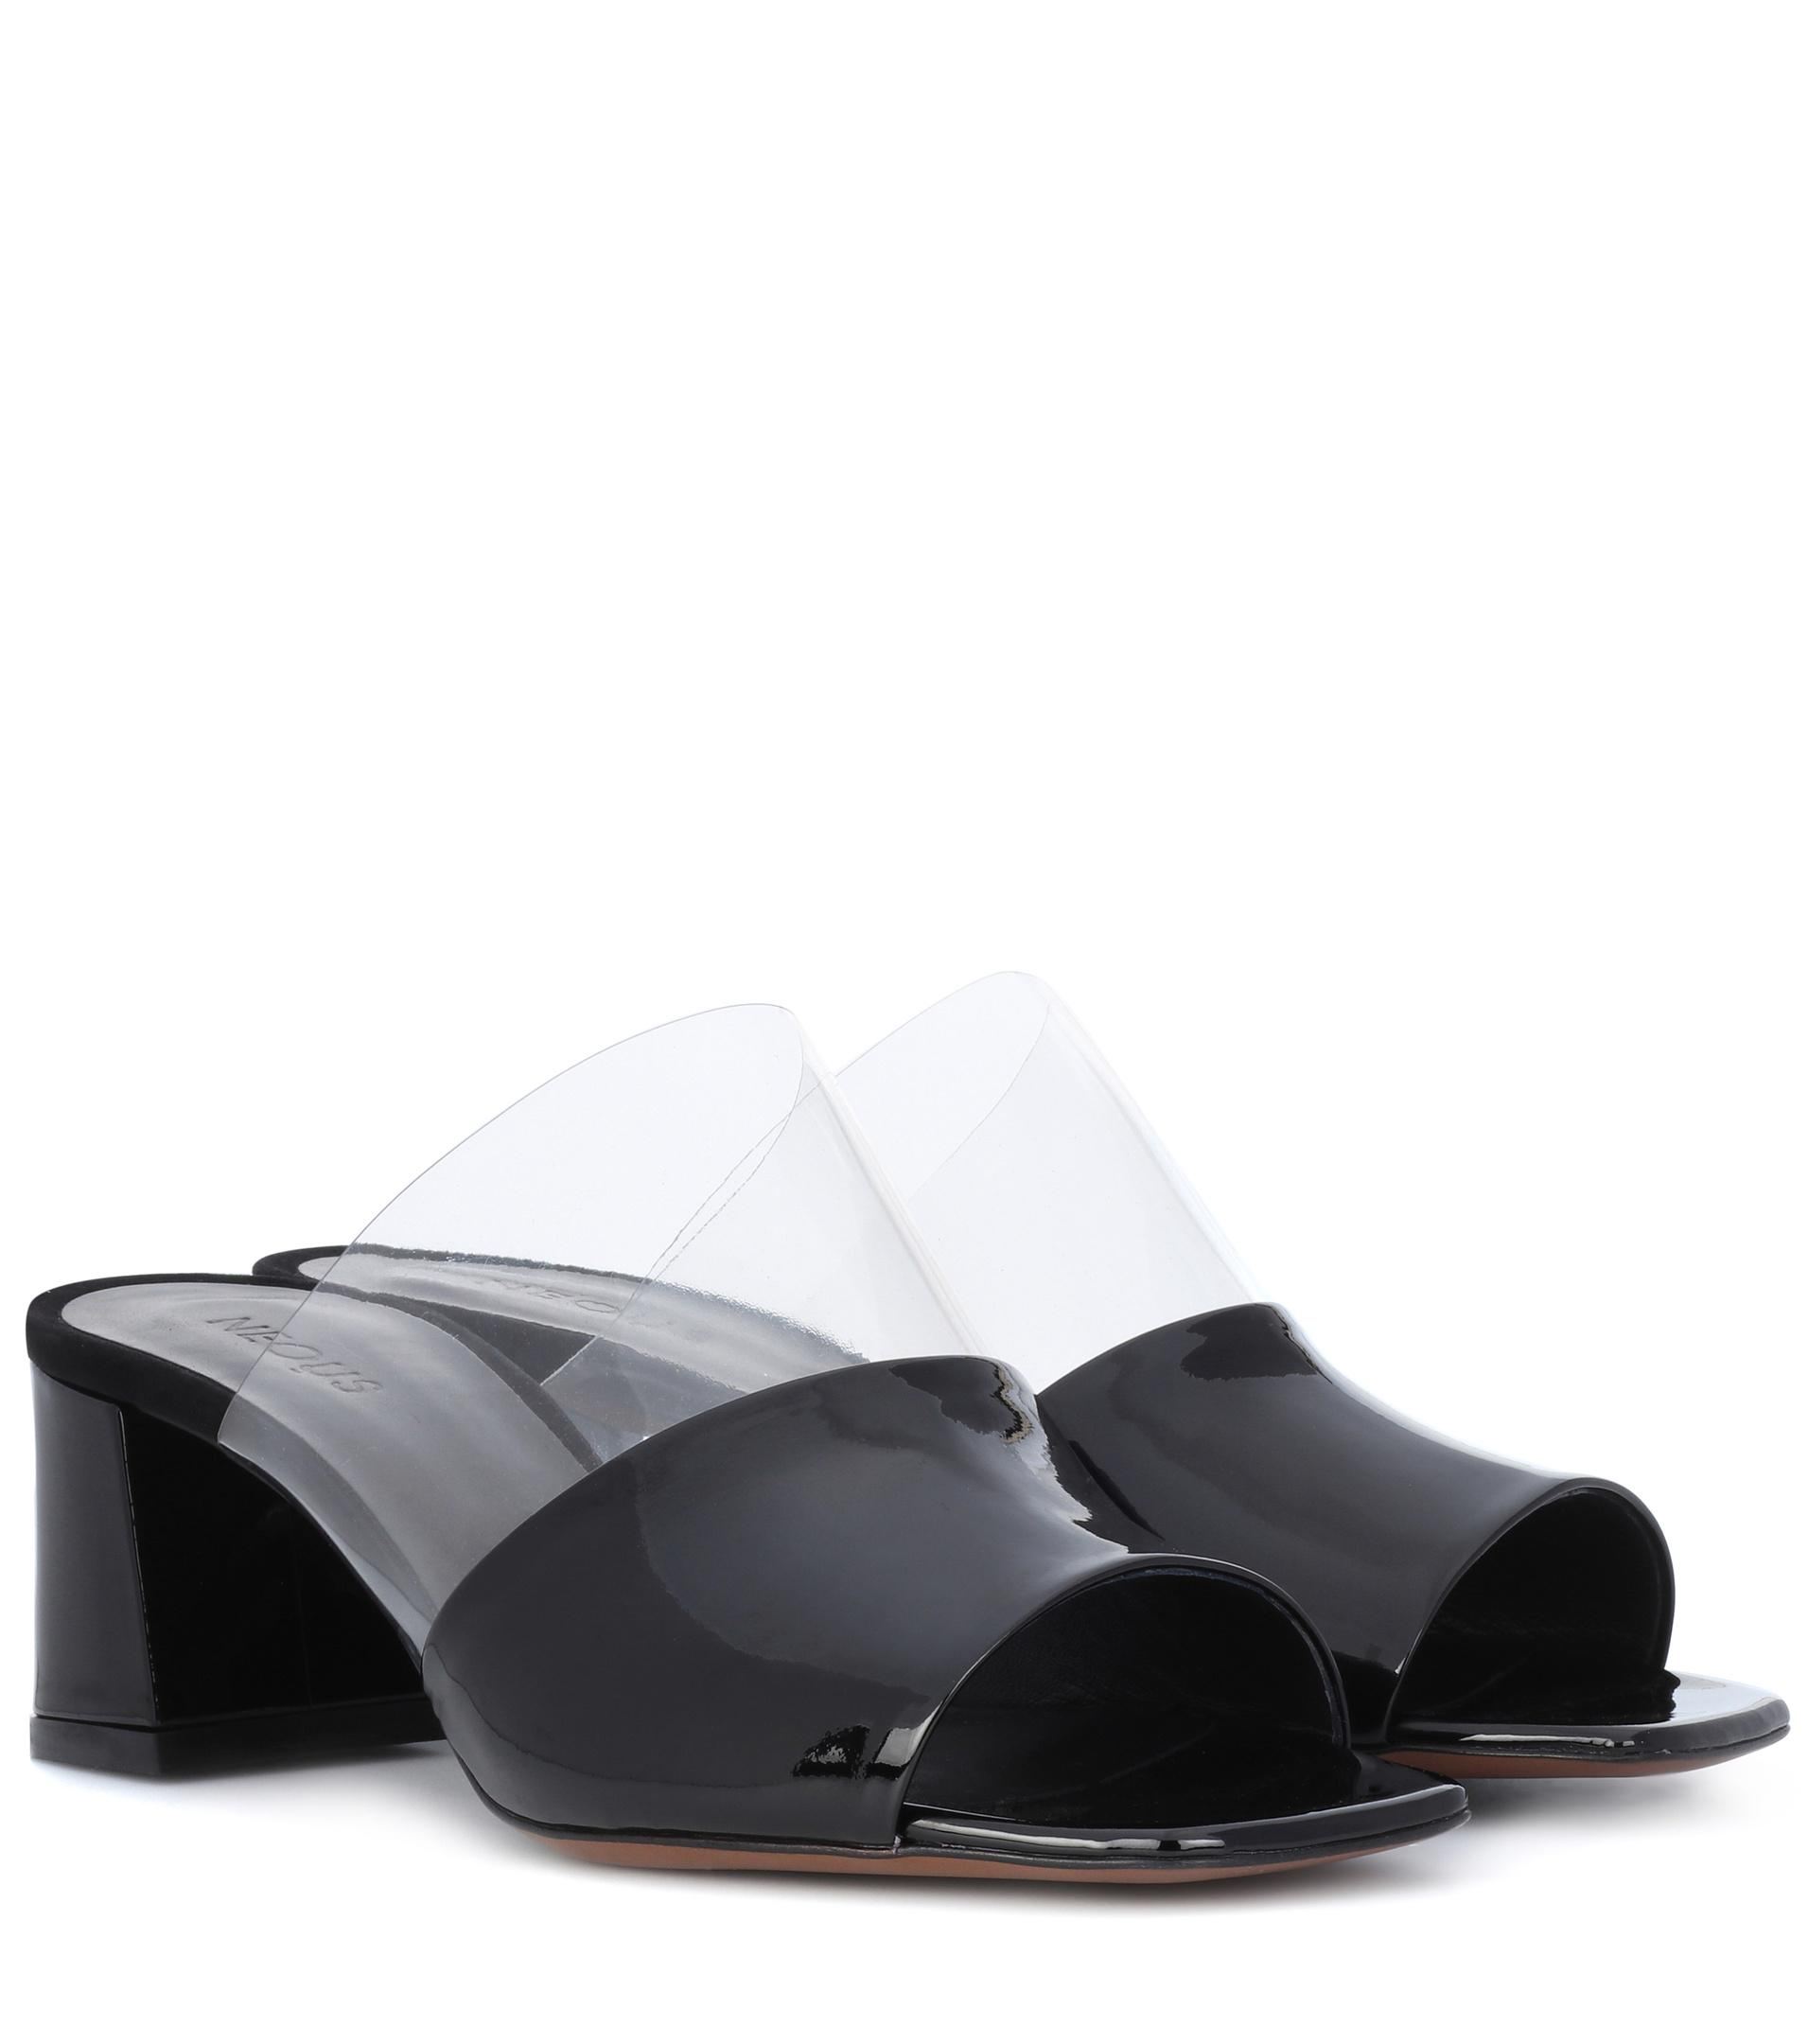 Chost Perspex and Leather Sandals Neous